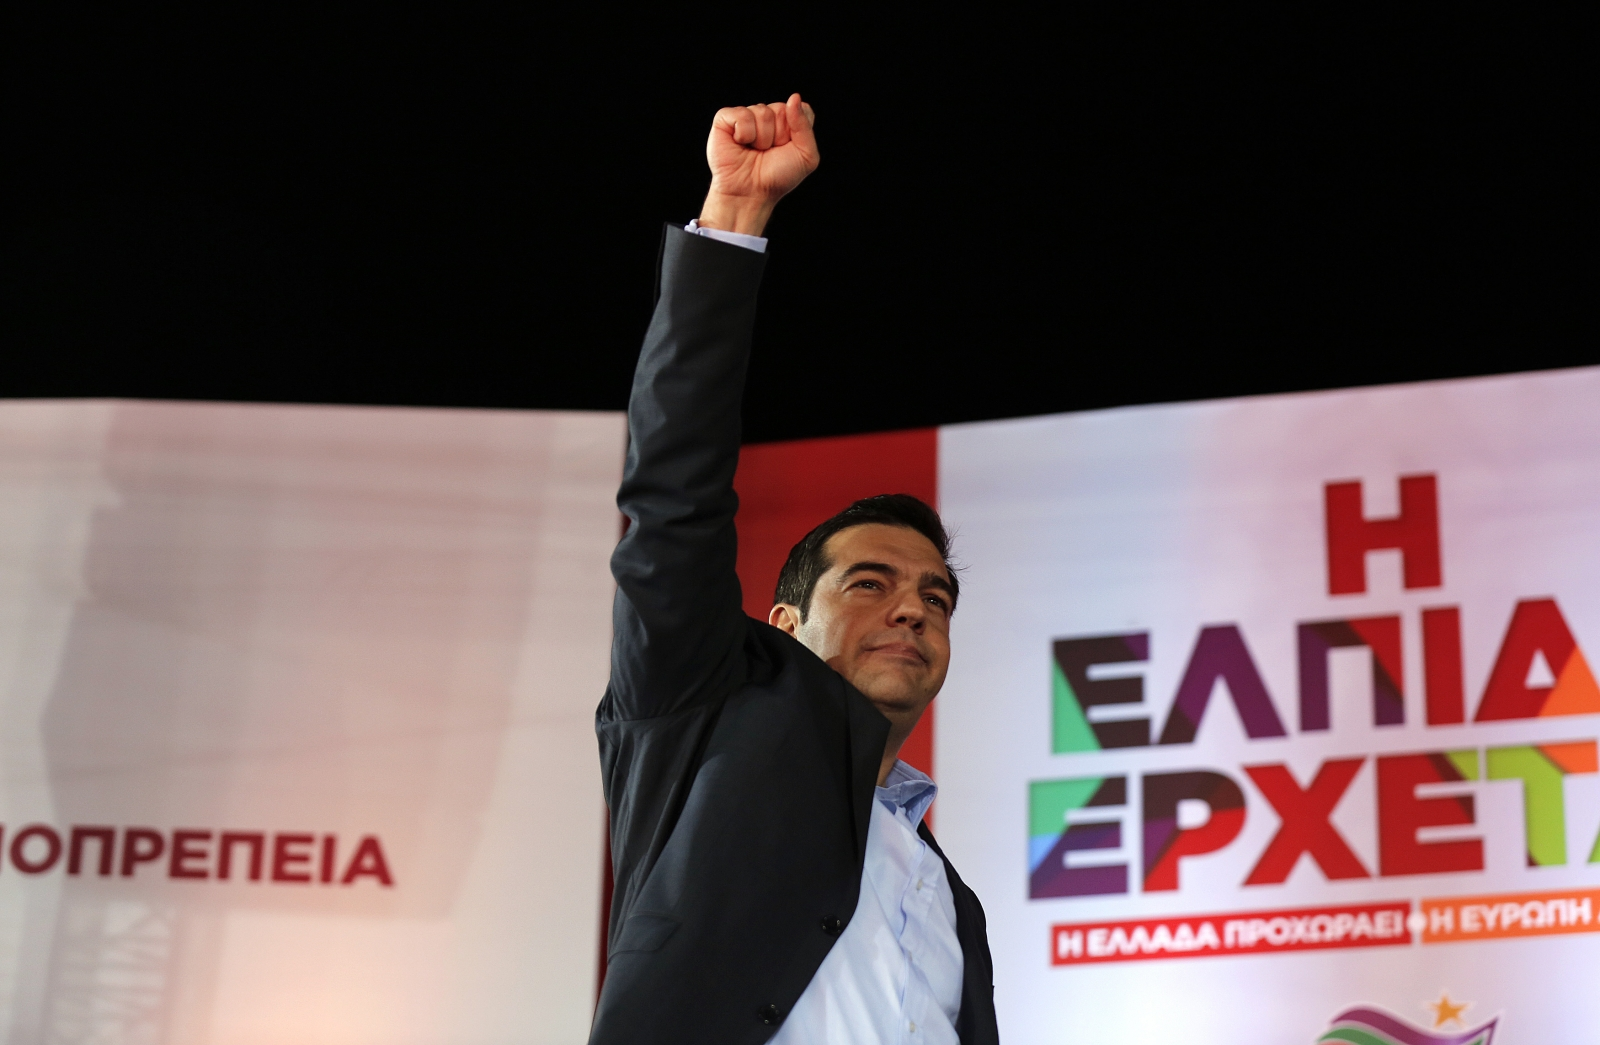 Rradical leftist Syriza party Alexis Tsipras